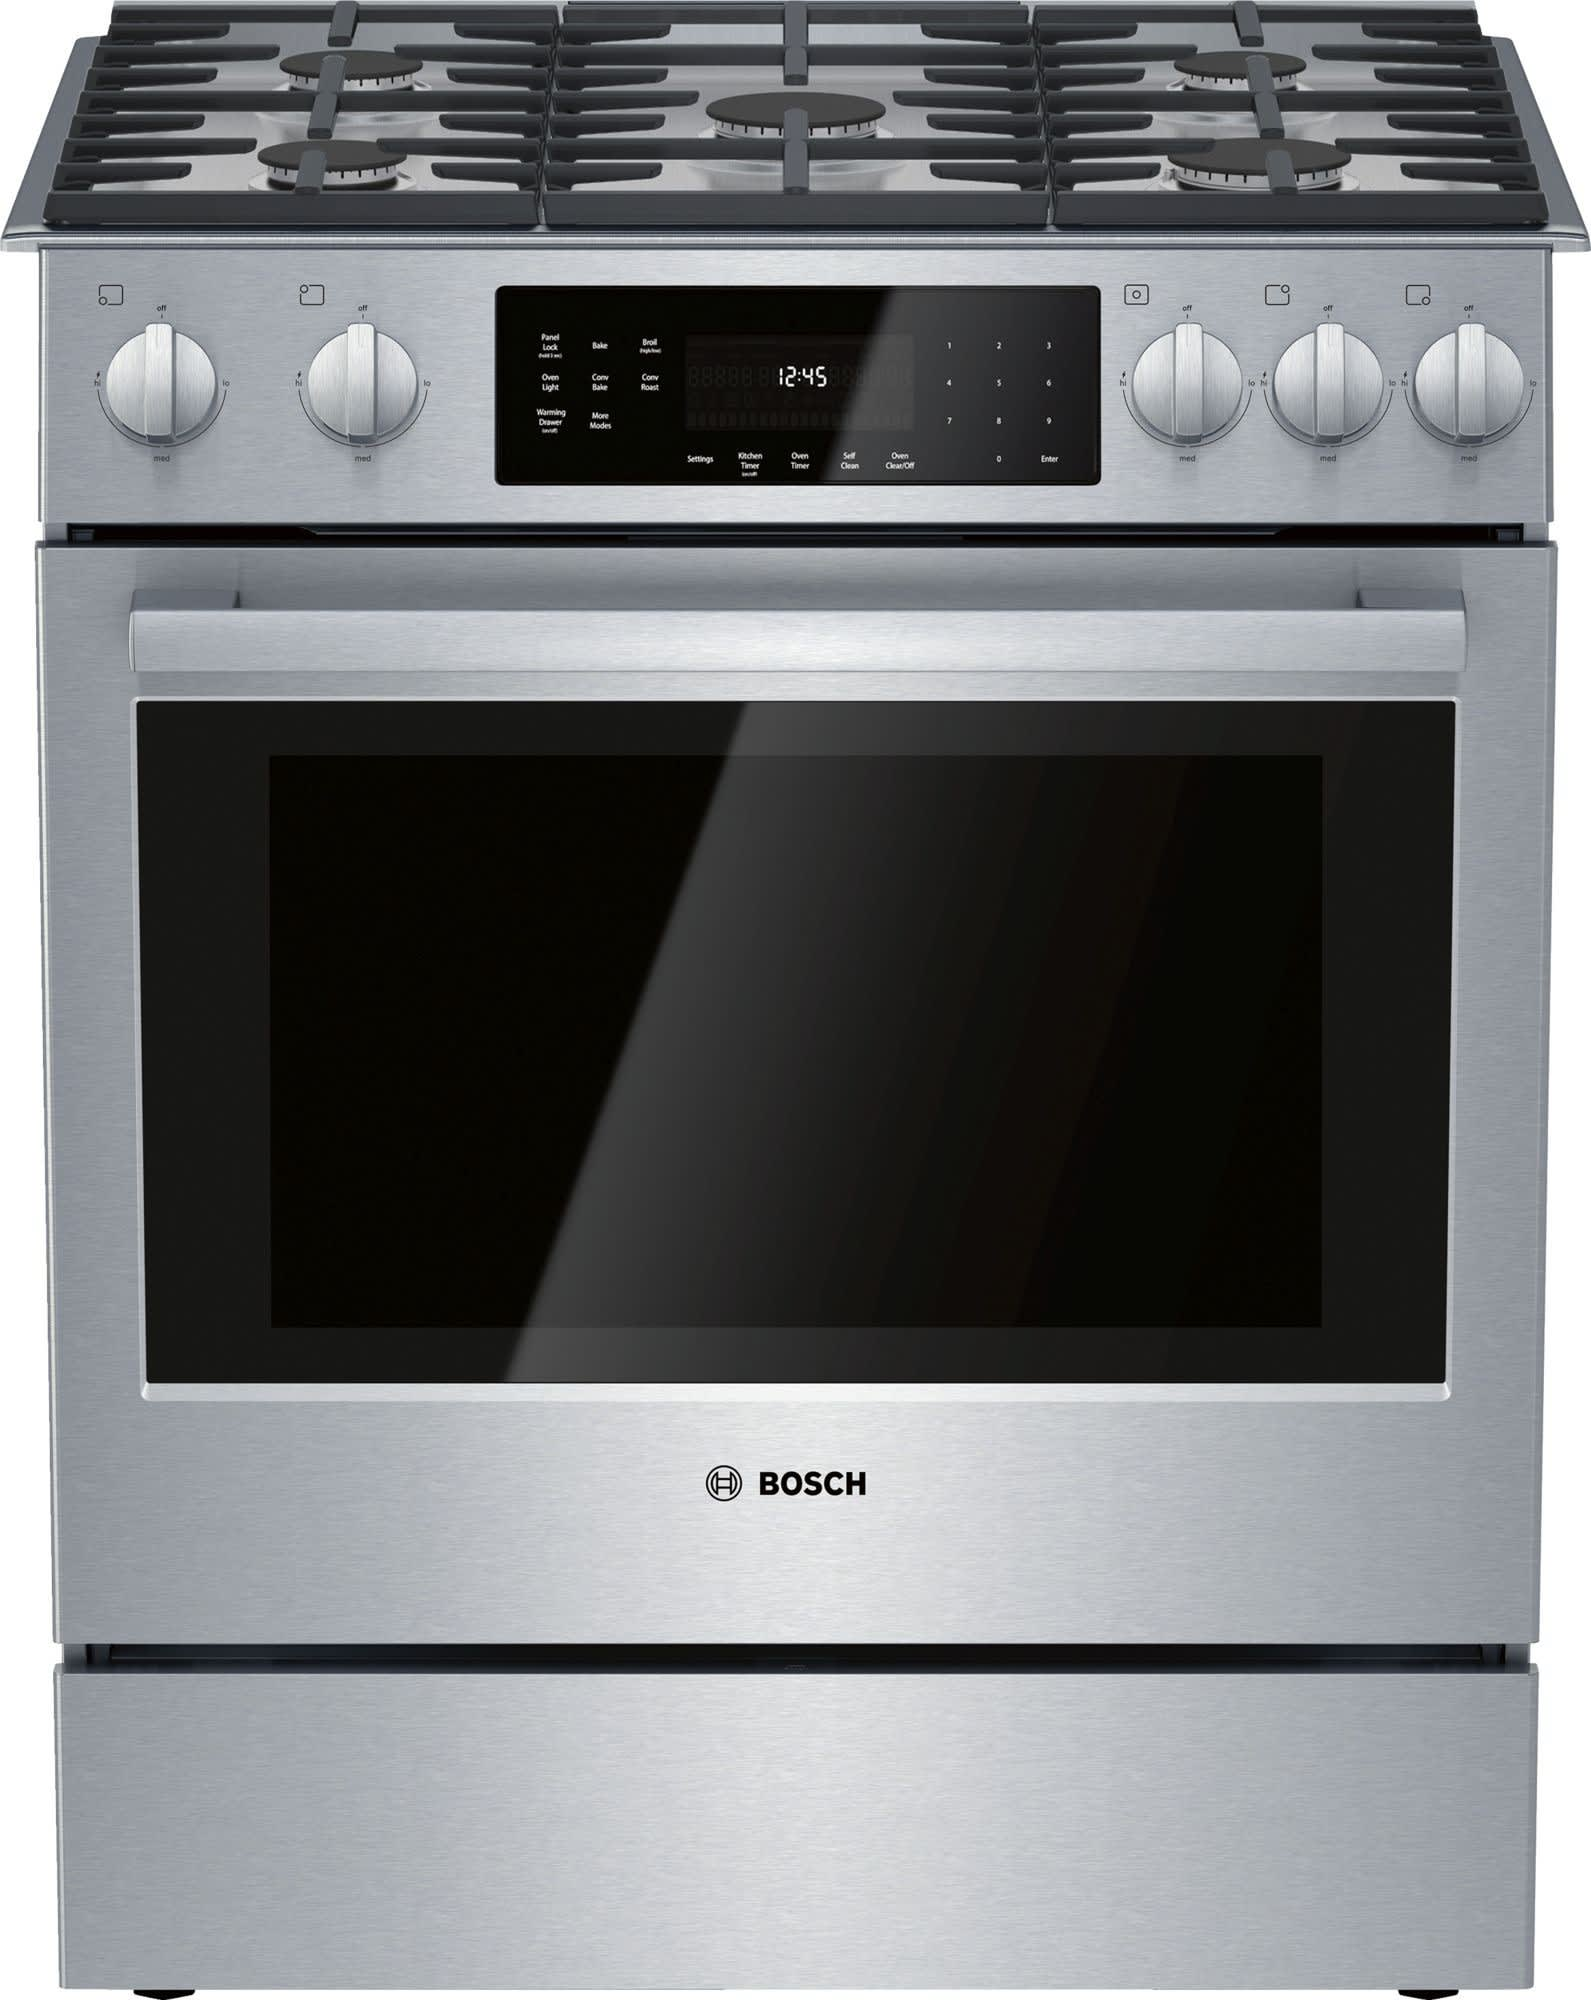 Bosch SGE63E05UC Full Console Dishwasher with 6 Wash Cycles